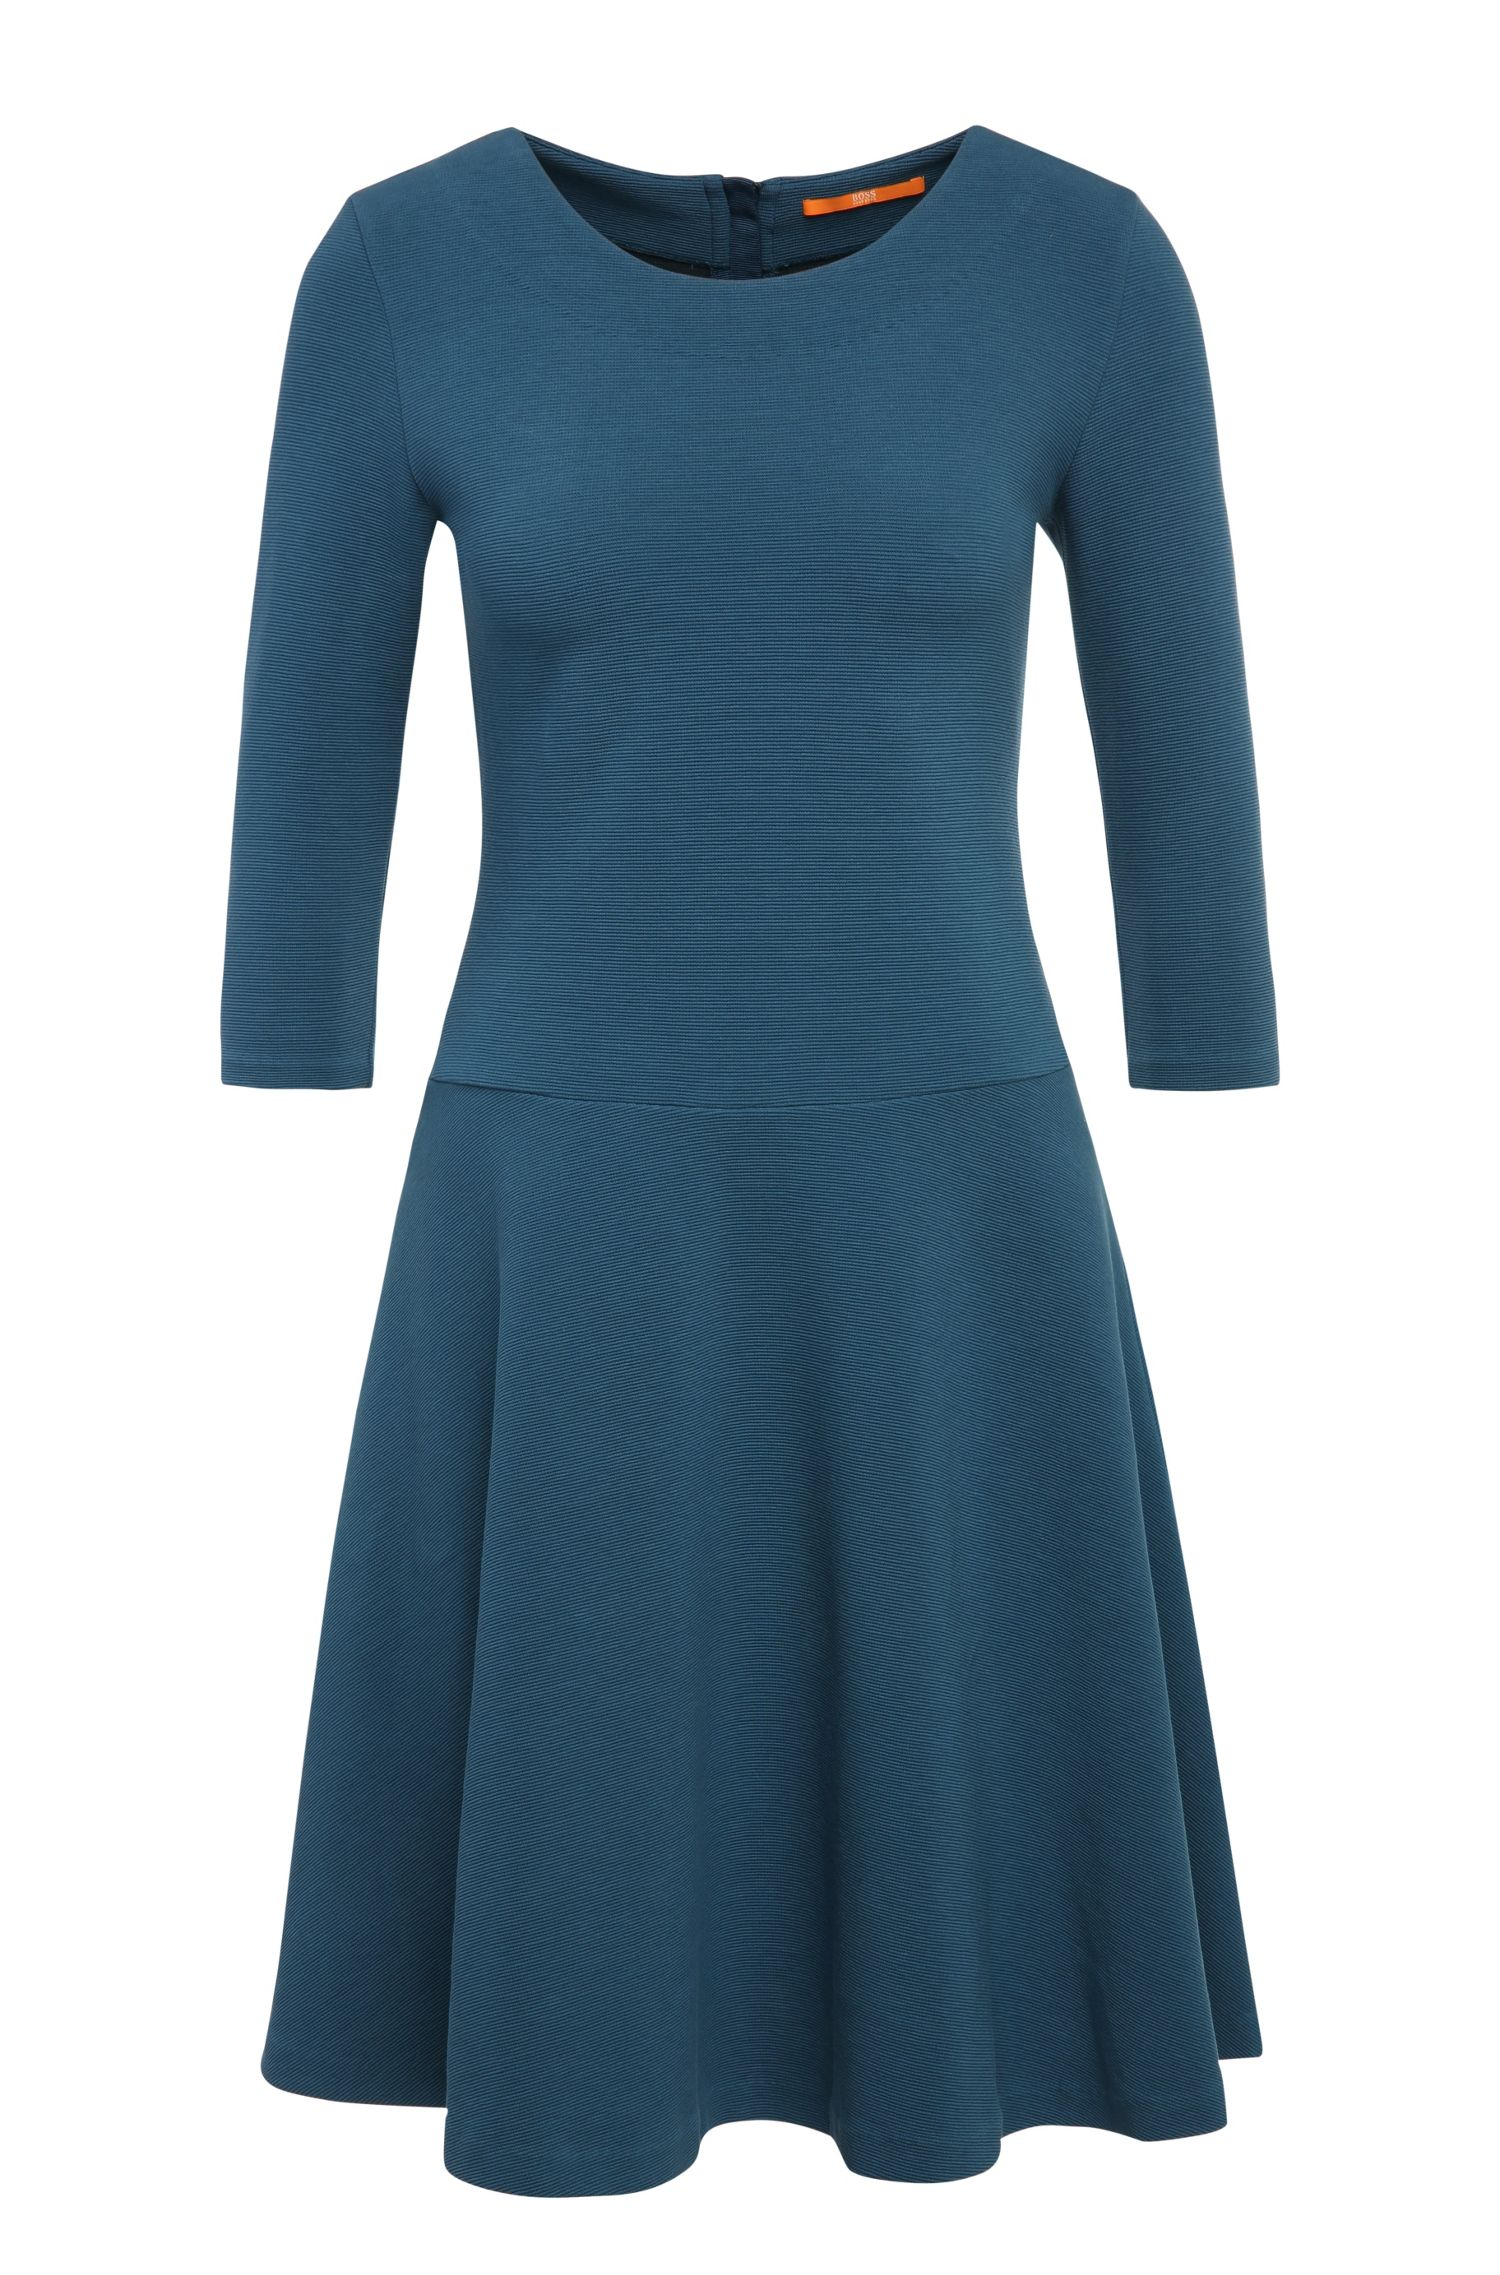 'Dipleat' | Stretch Cotton Blend Ribbed A-Line Dress